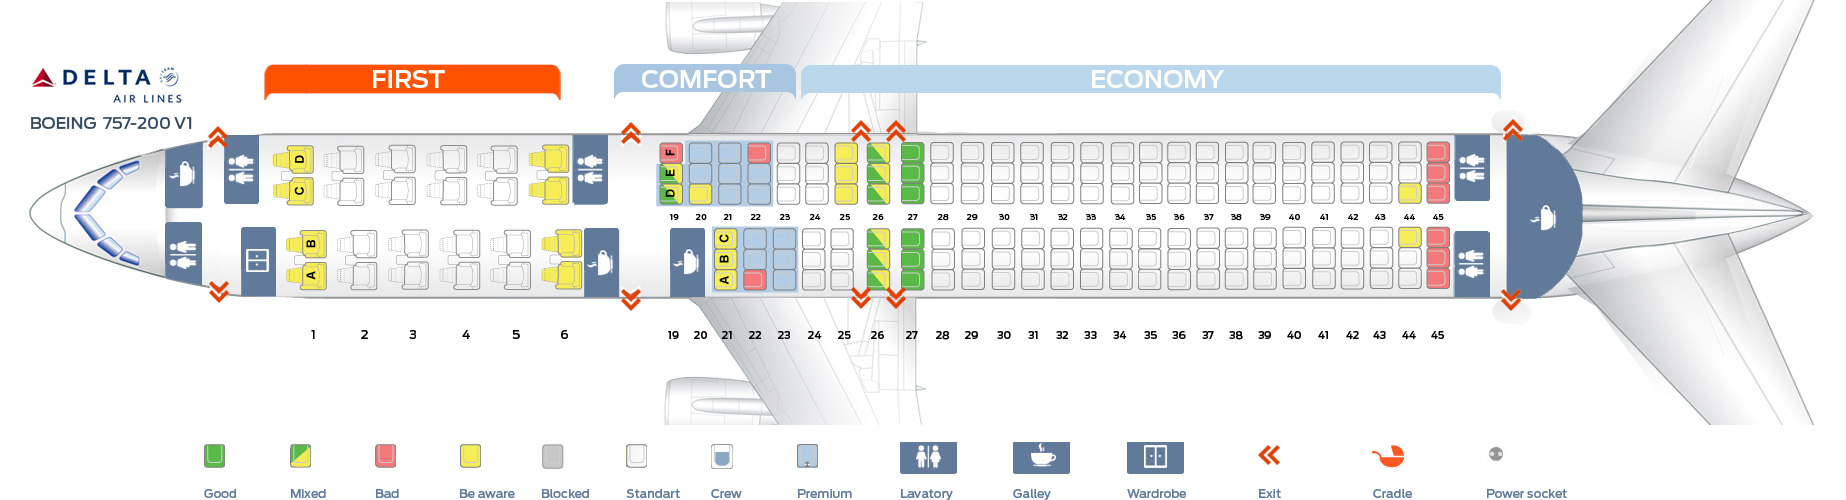 Seat_map_Delta_Airlines_Boeing_757-200_v1